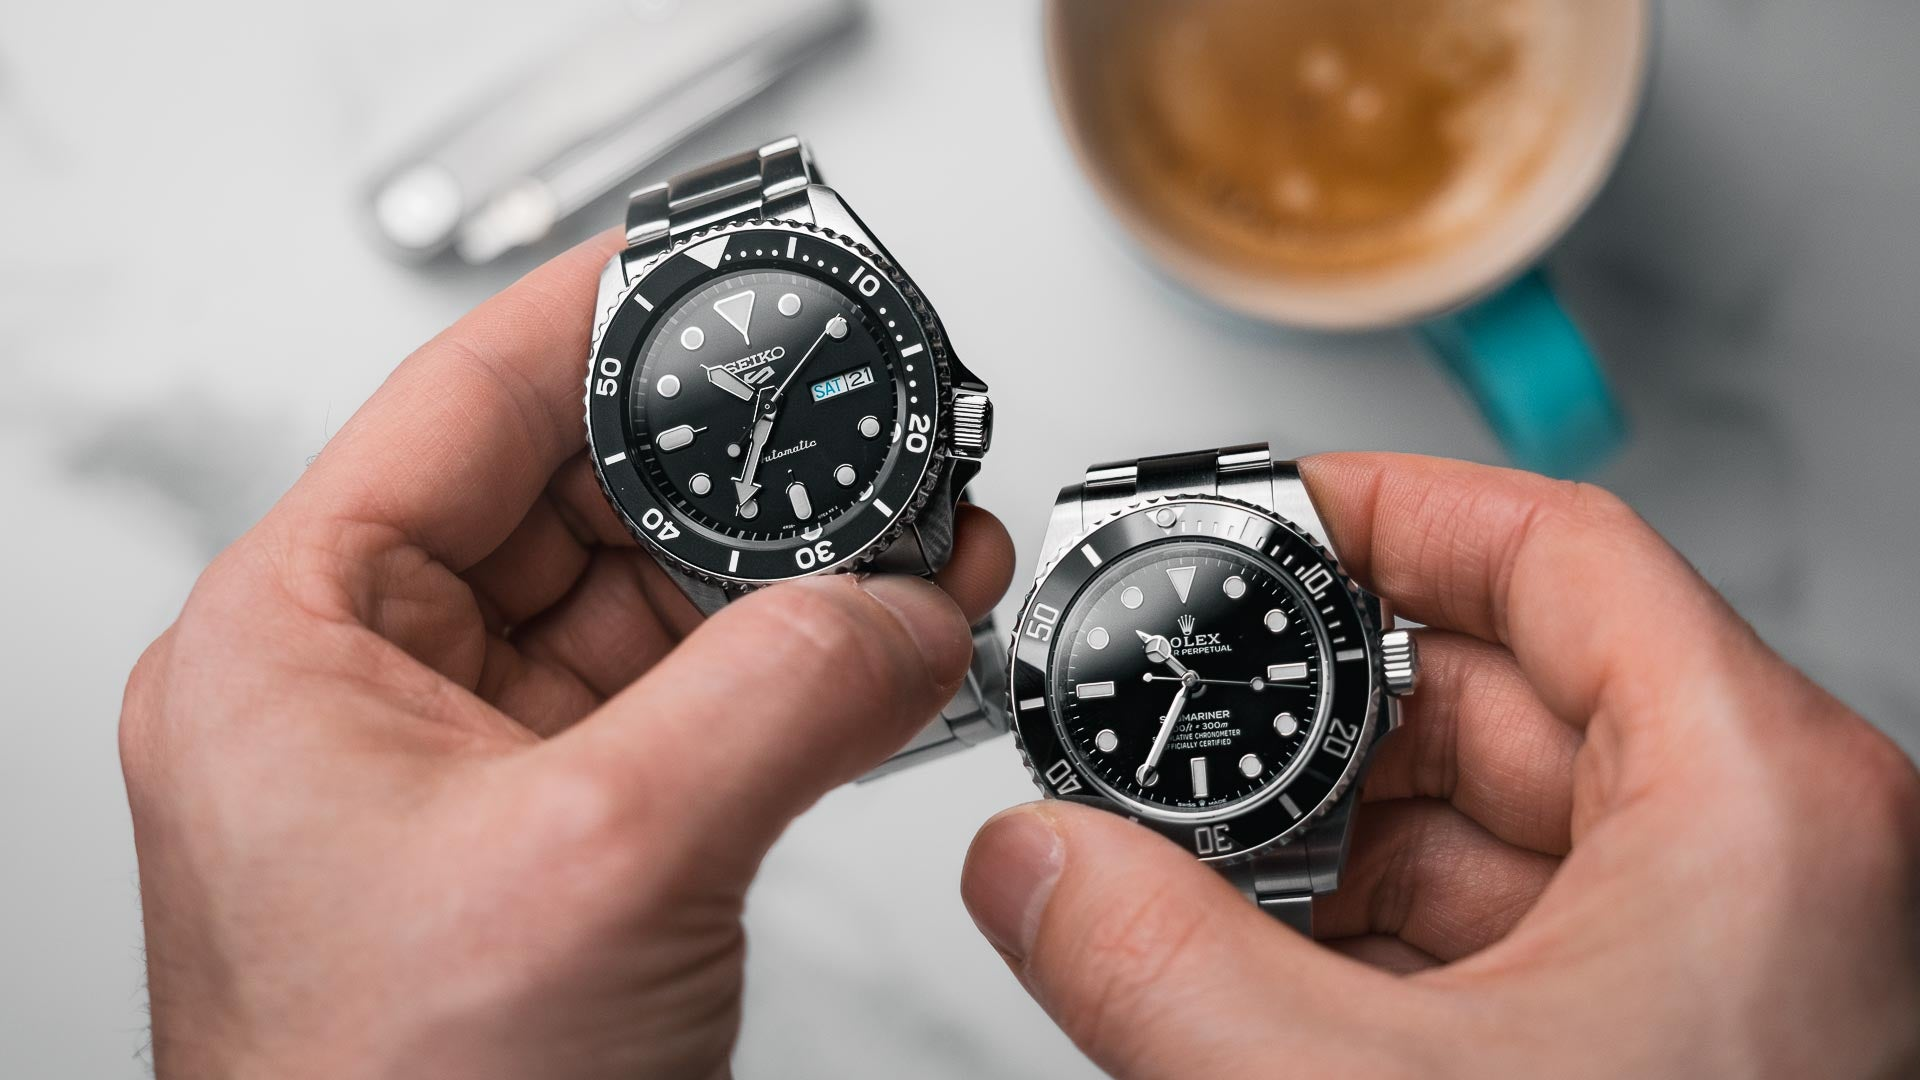 £250 Vs £6500 - Affordable or Luxury Watch